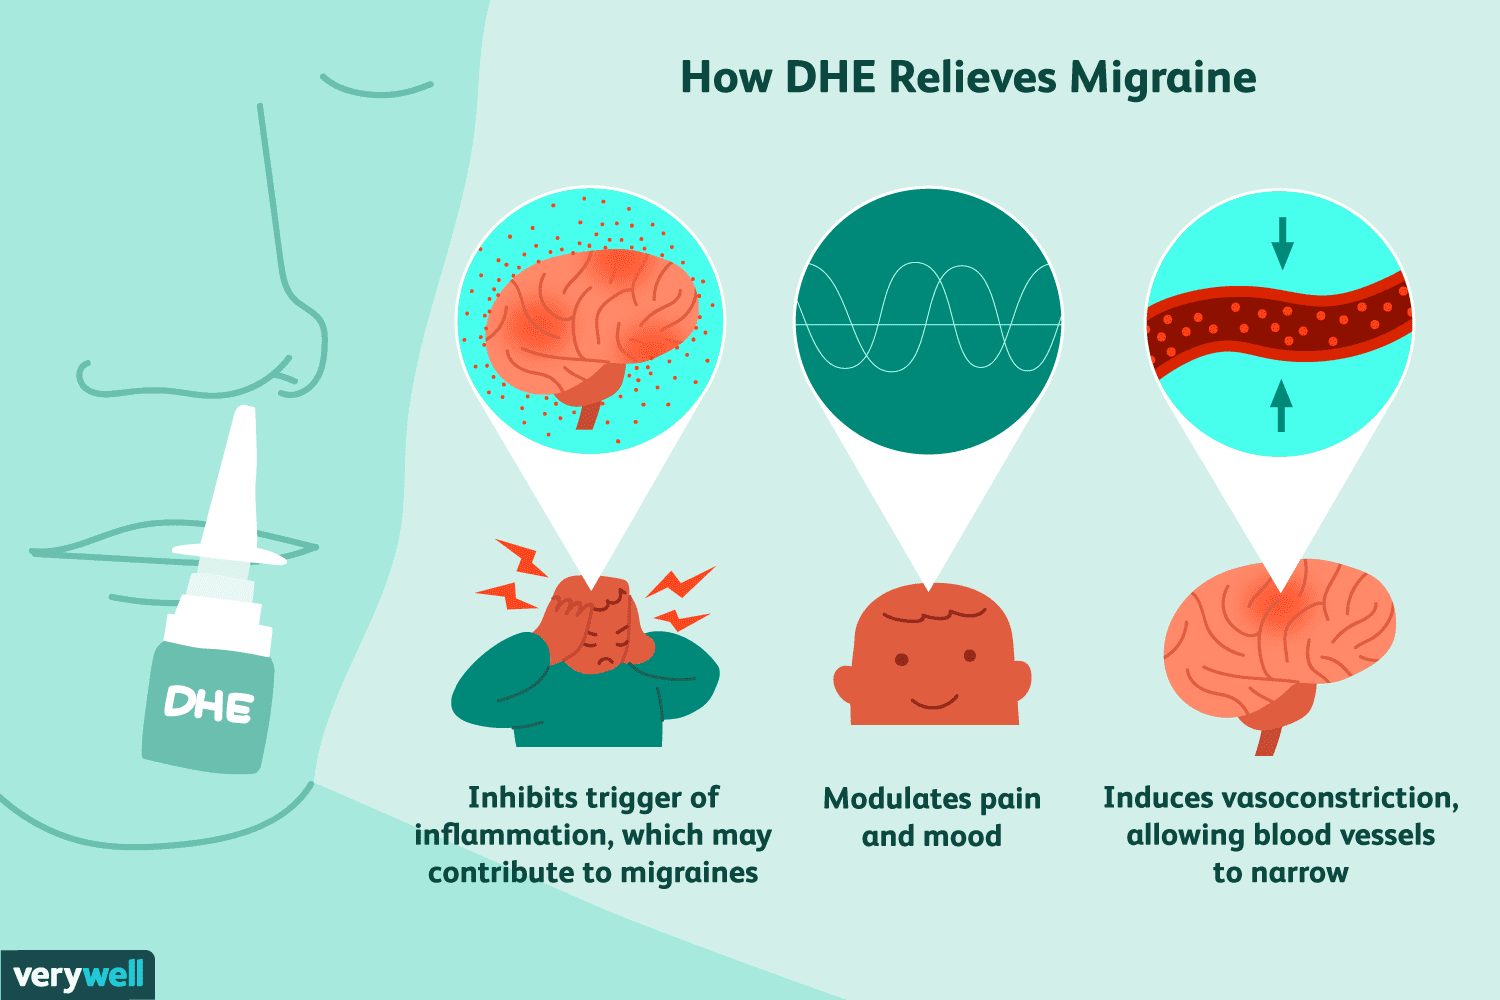 how DHE relieves migraine